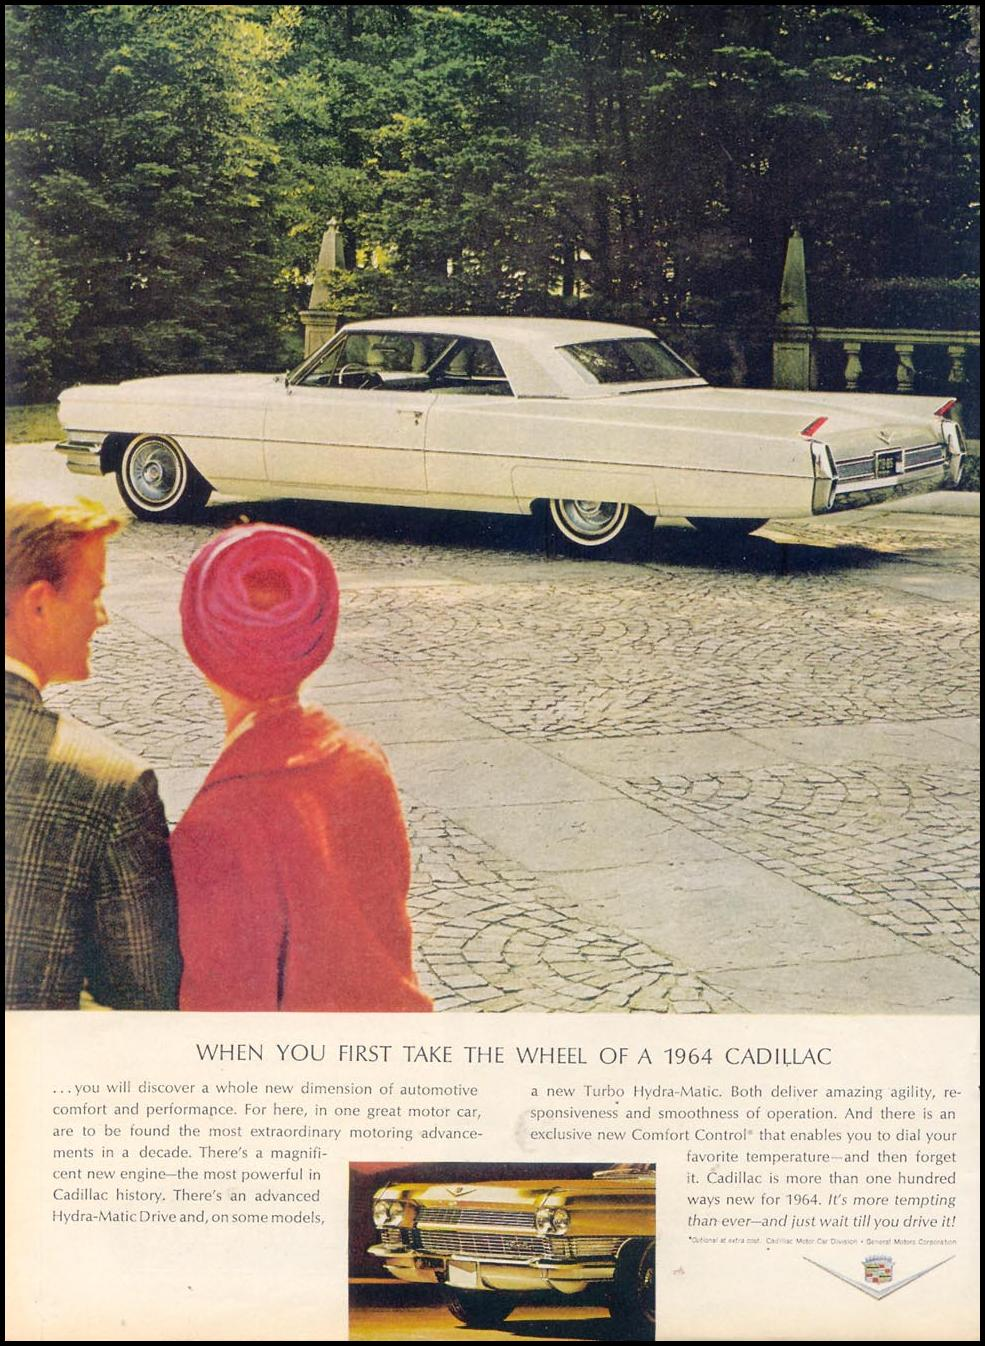 CADILLAC AUTOMOBILES TIME